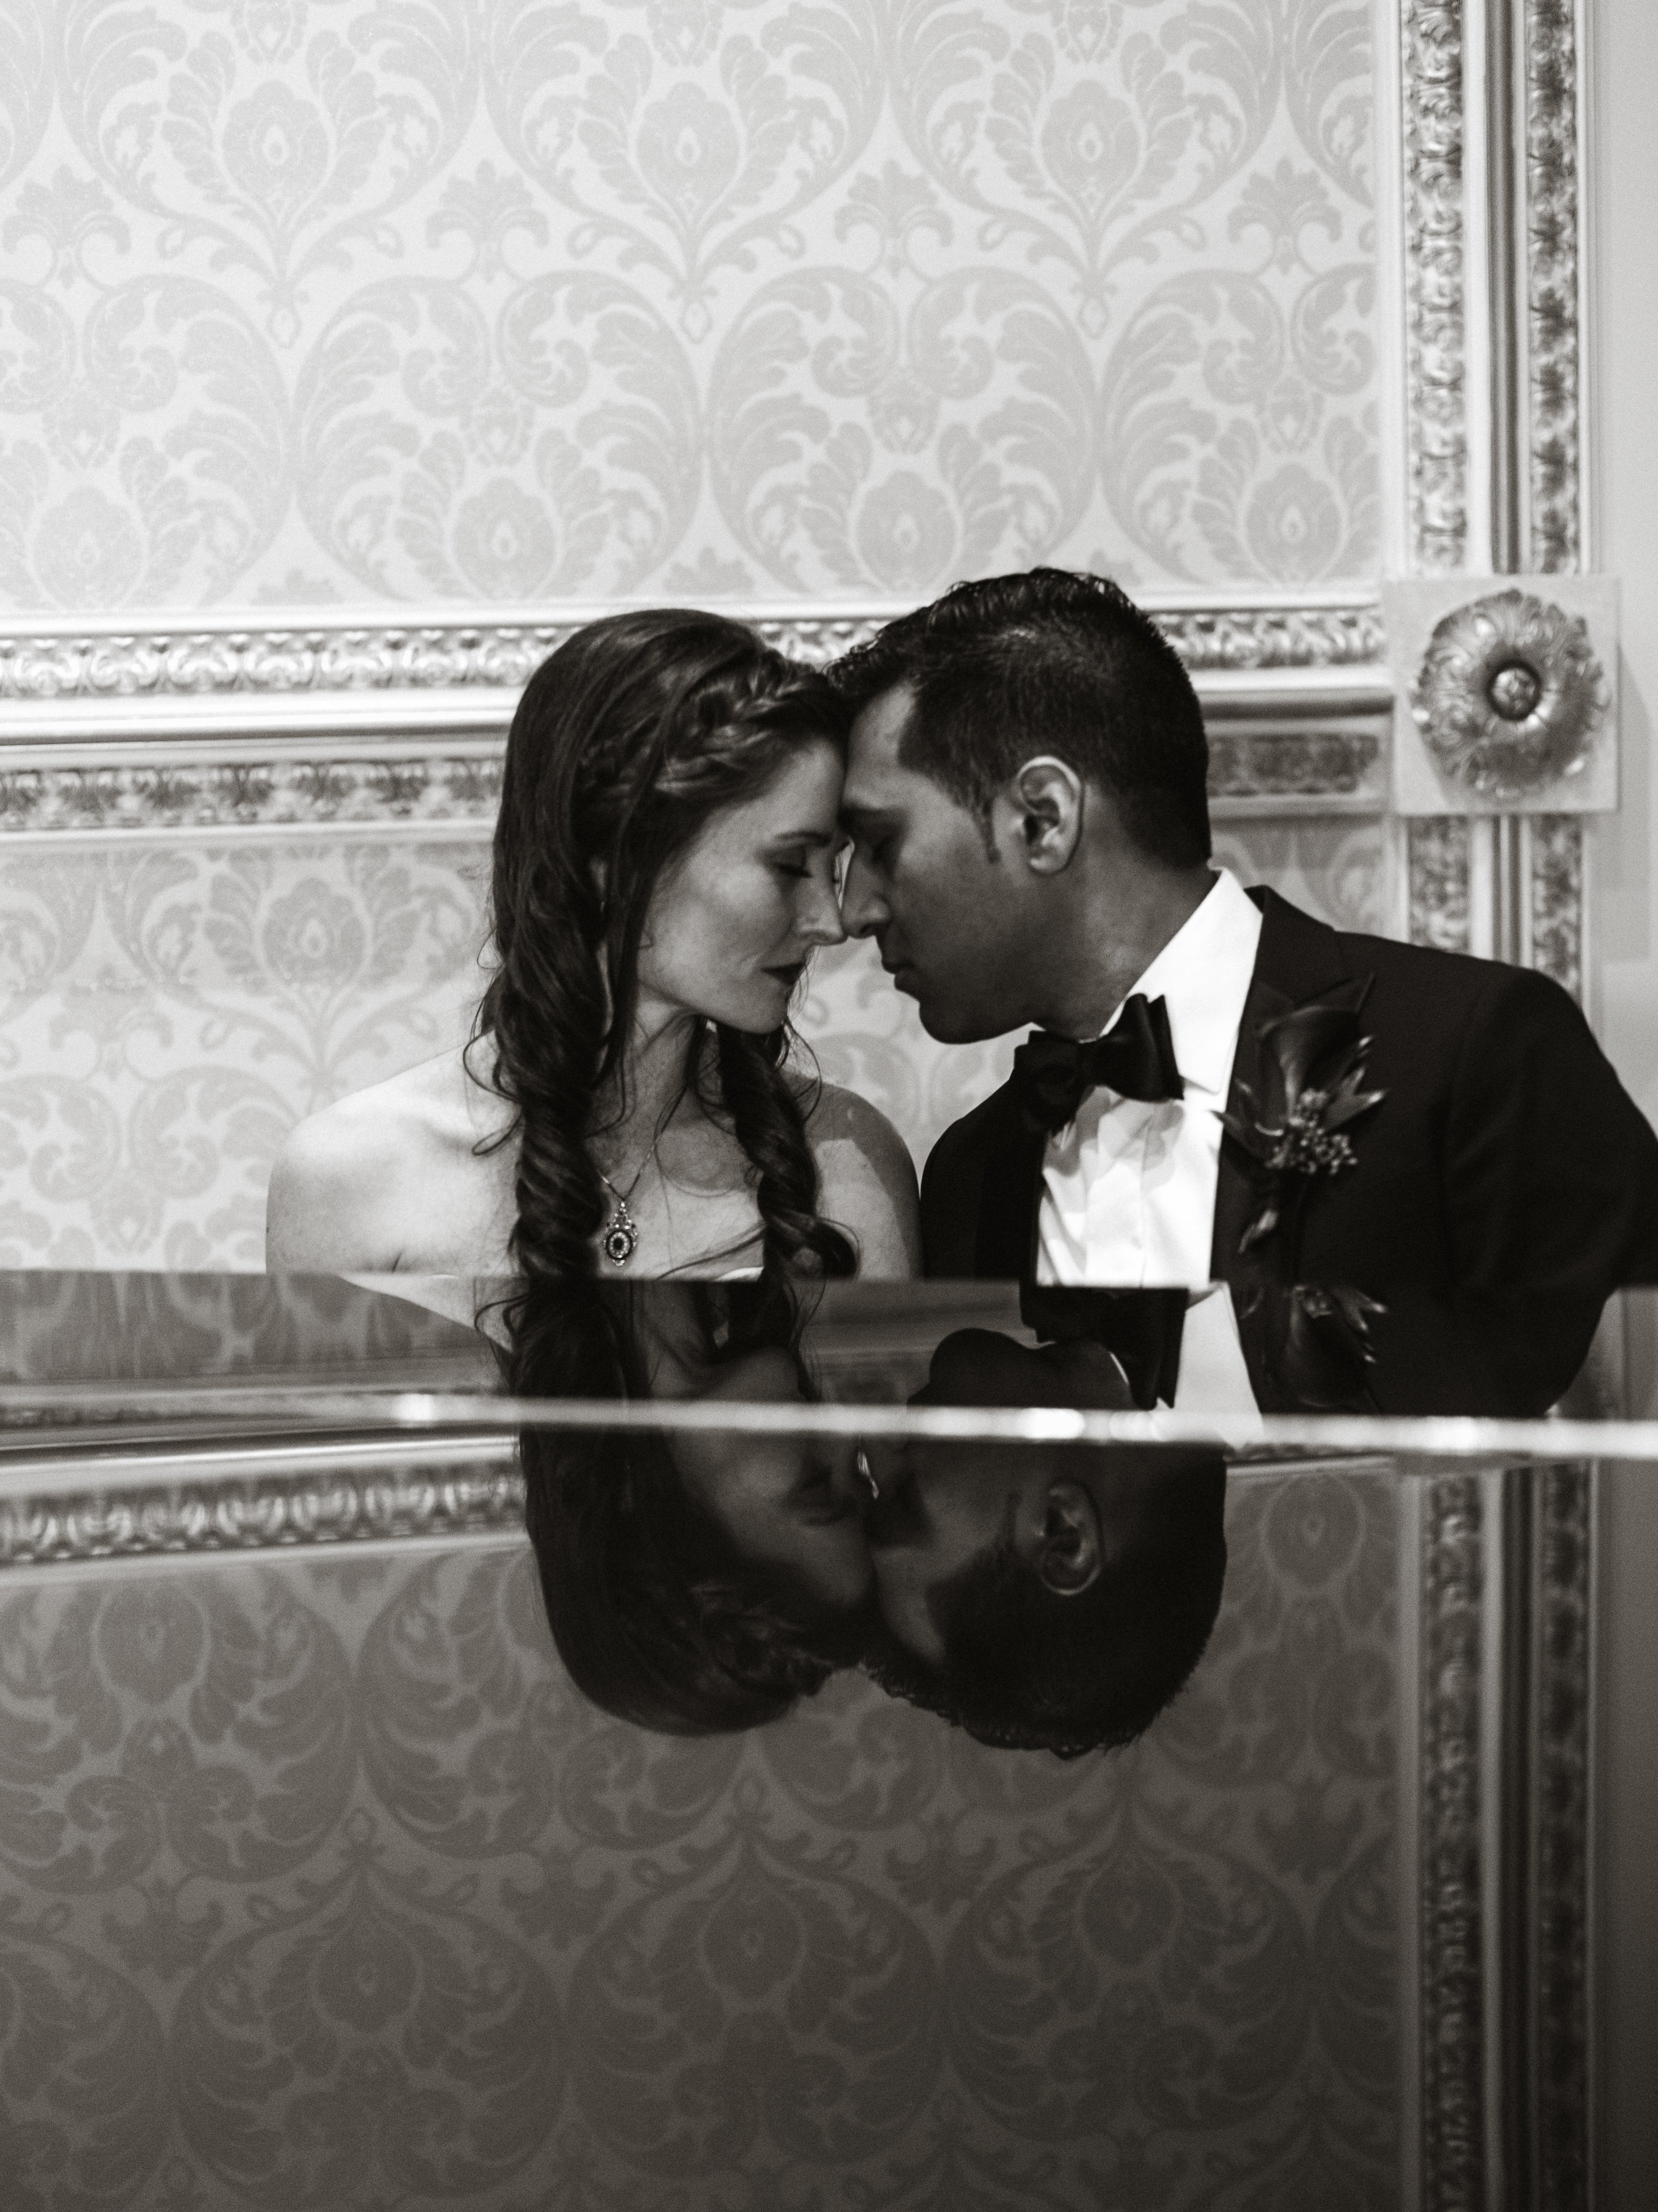 Reflection of couple sitting at a piano at a toronto wedding